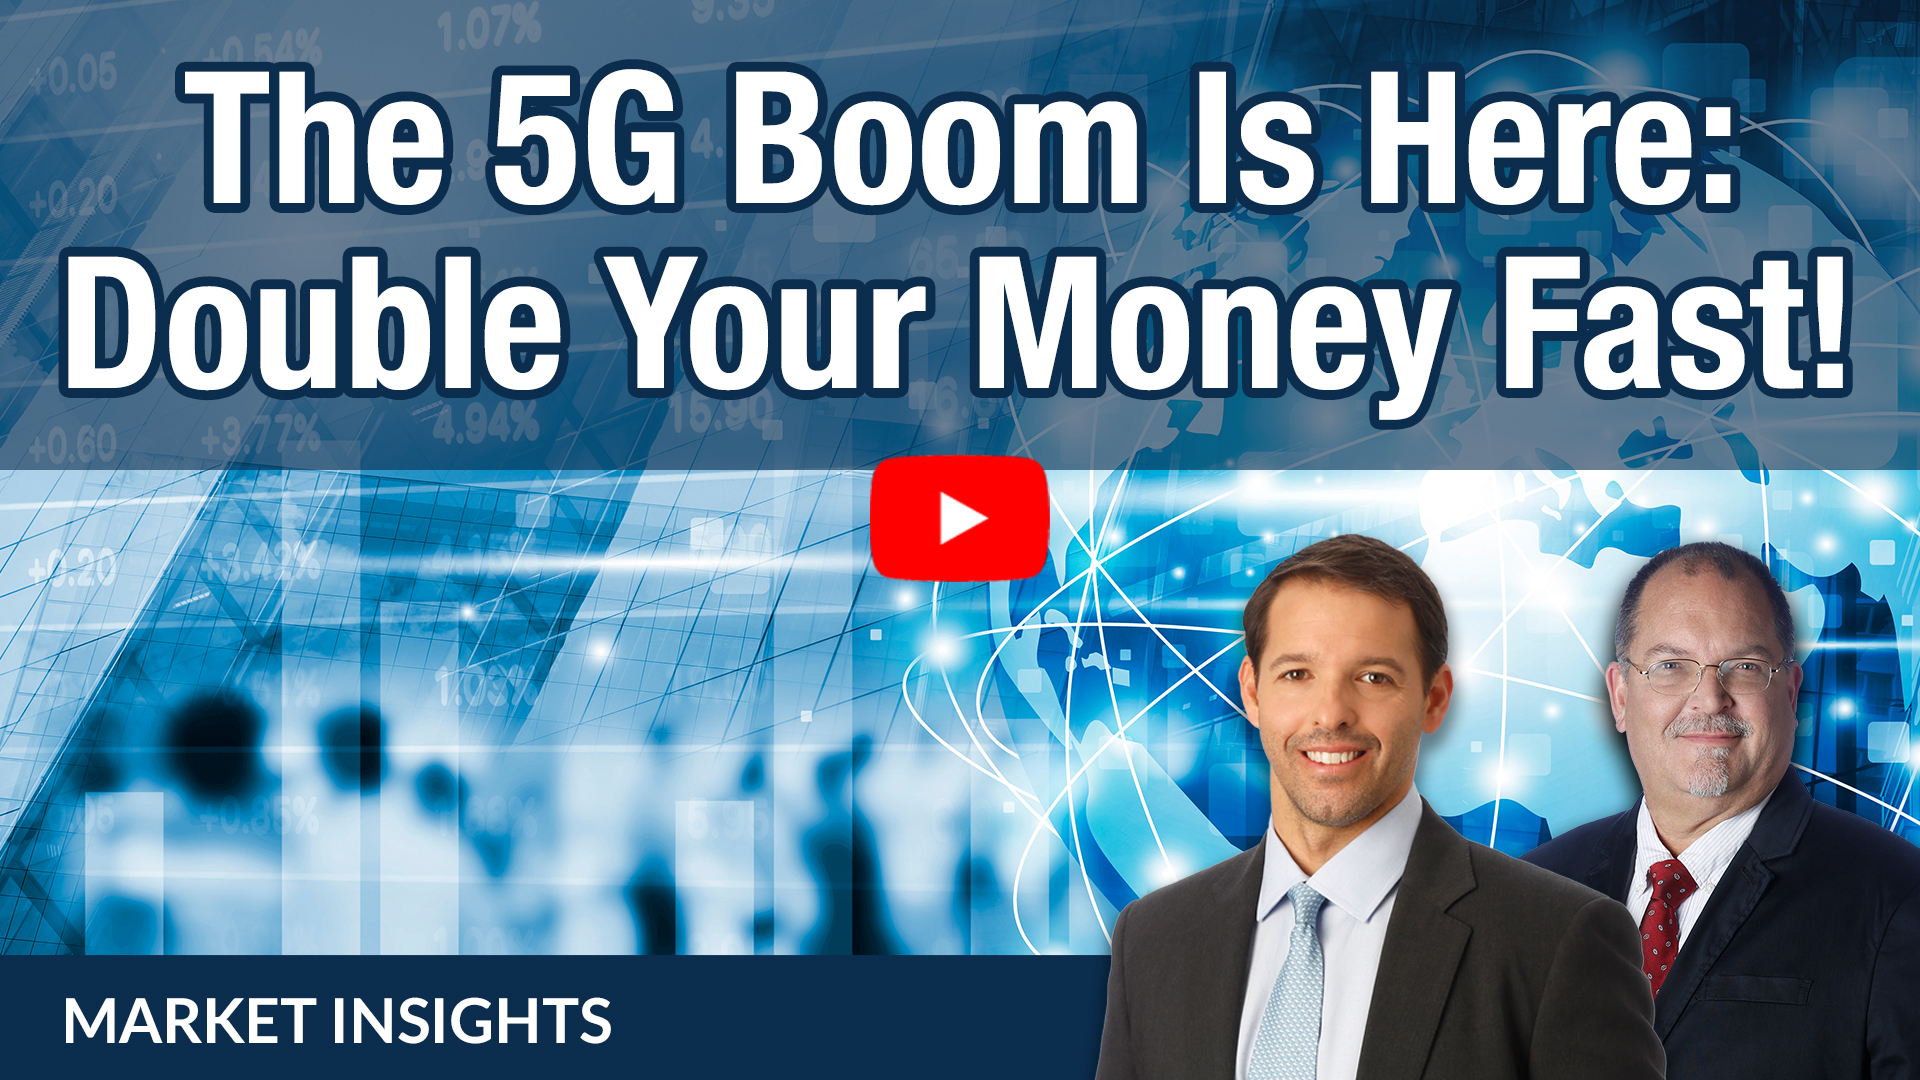 The new 5G internet is more than 10 times faster than 4G. This massive upgrade will enable a wide variety of new devices and industries, setting investors up for quick 100%-plus gains.